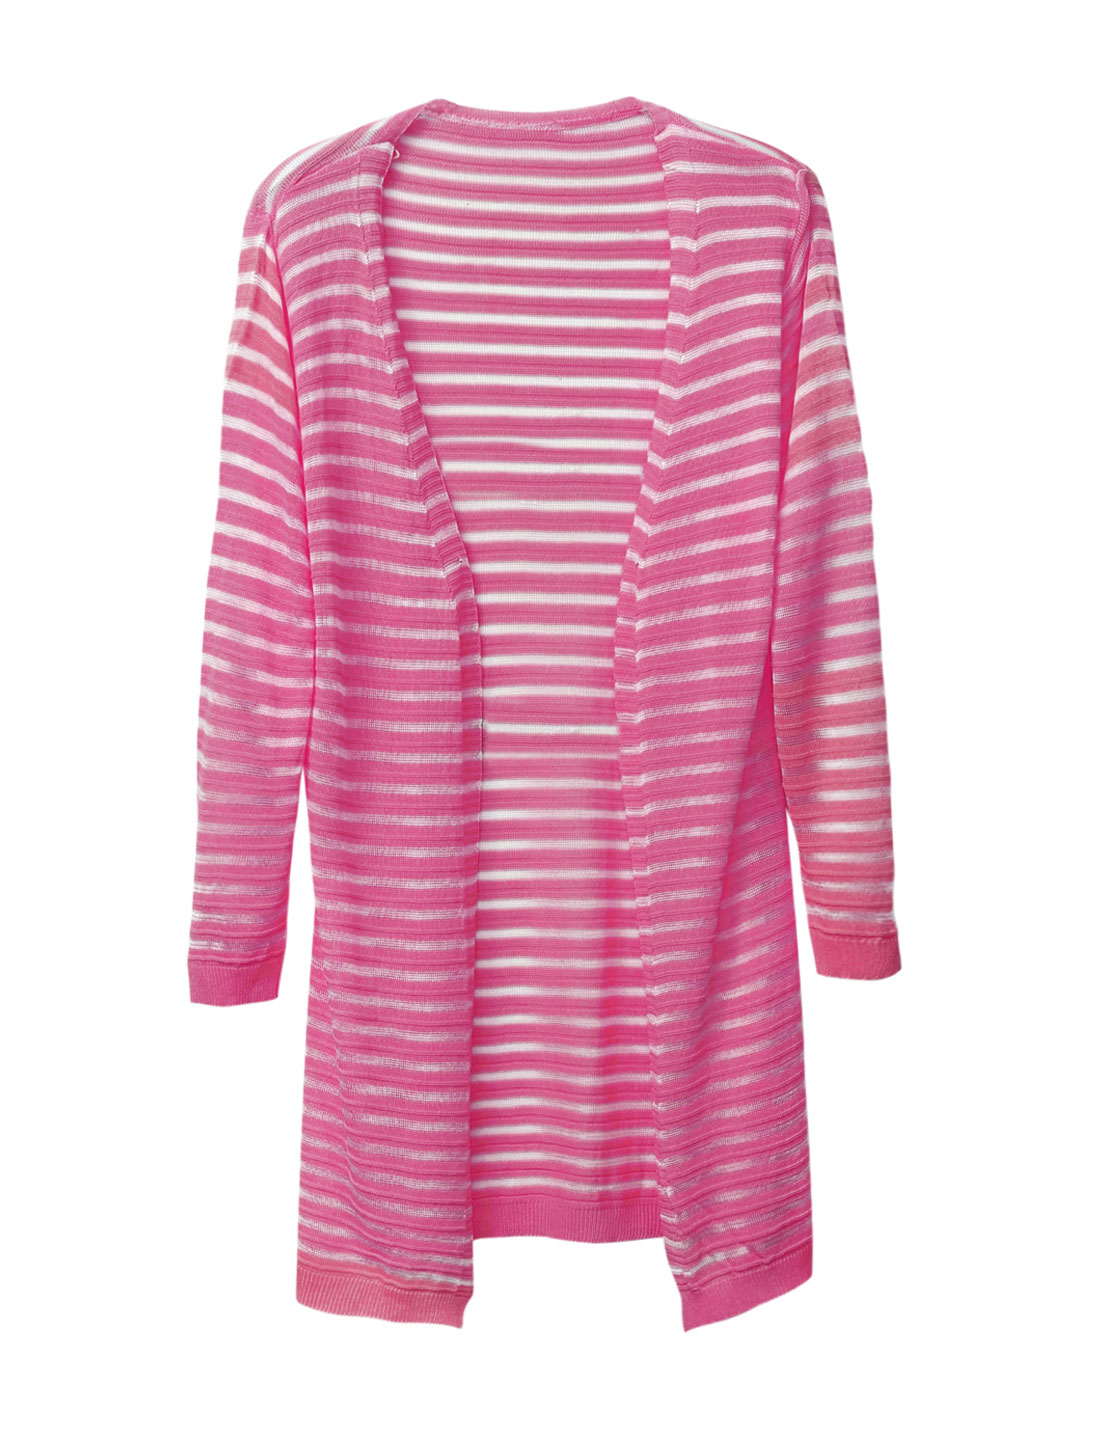 Women Buttonless 3/4 Sleeves Striped Casual Light Long Cardigan Fuchsia S